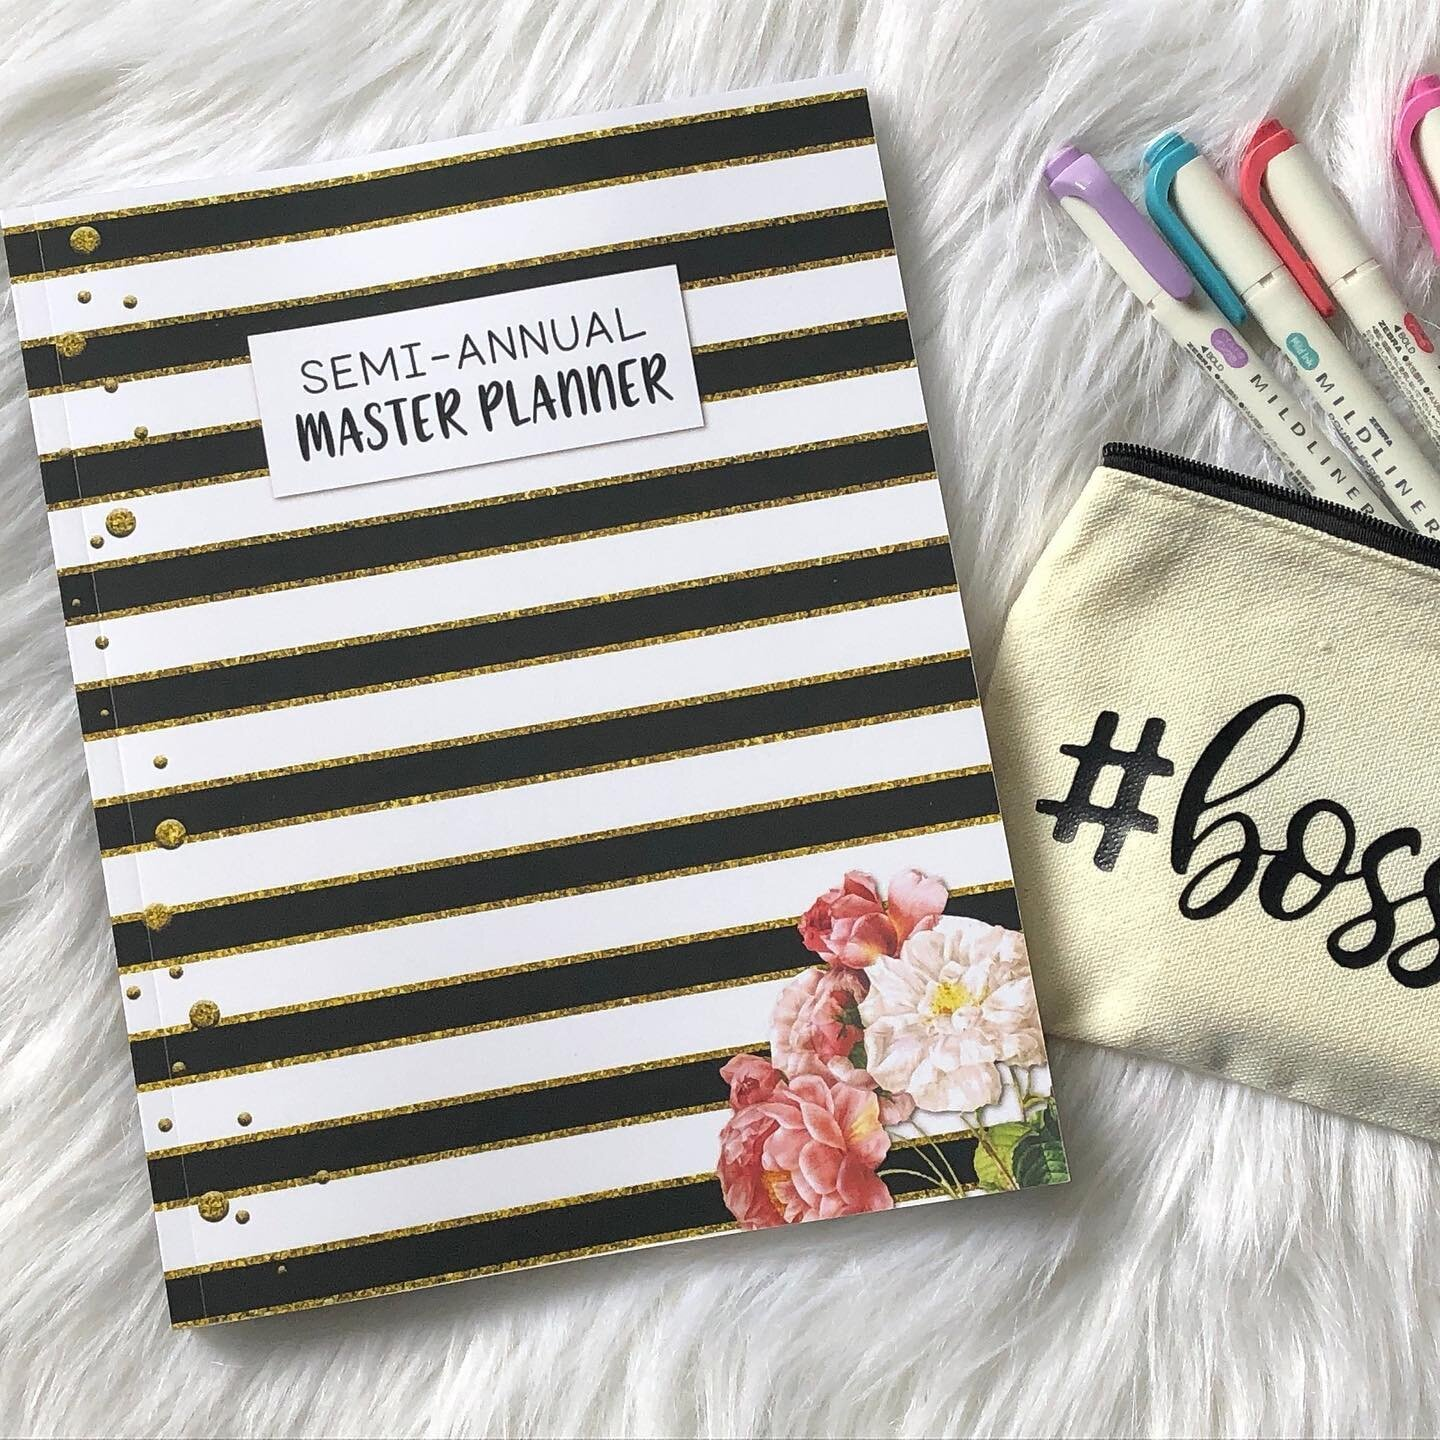 """Thanks for the kind words! ★★★★★ """"Oh my goodness, this was exactly what I needed! It's like she read my mind to see my needs and wants in a planner. I plan on using this from June to December so it arrived in perfect timing."""" Heather #etsy #blac #black #white #physicalplanner #minimalistplanner #fullsizeplanner #monthlyplanner #weeklyplanner #dailyplanning #masterplanner https://etsy.me/3iMu5TQ"""